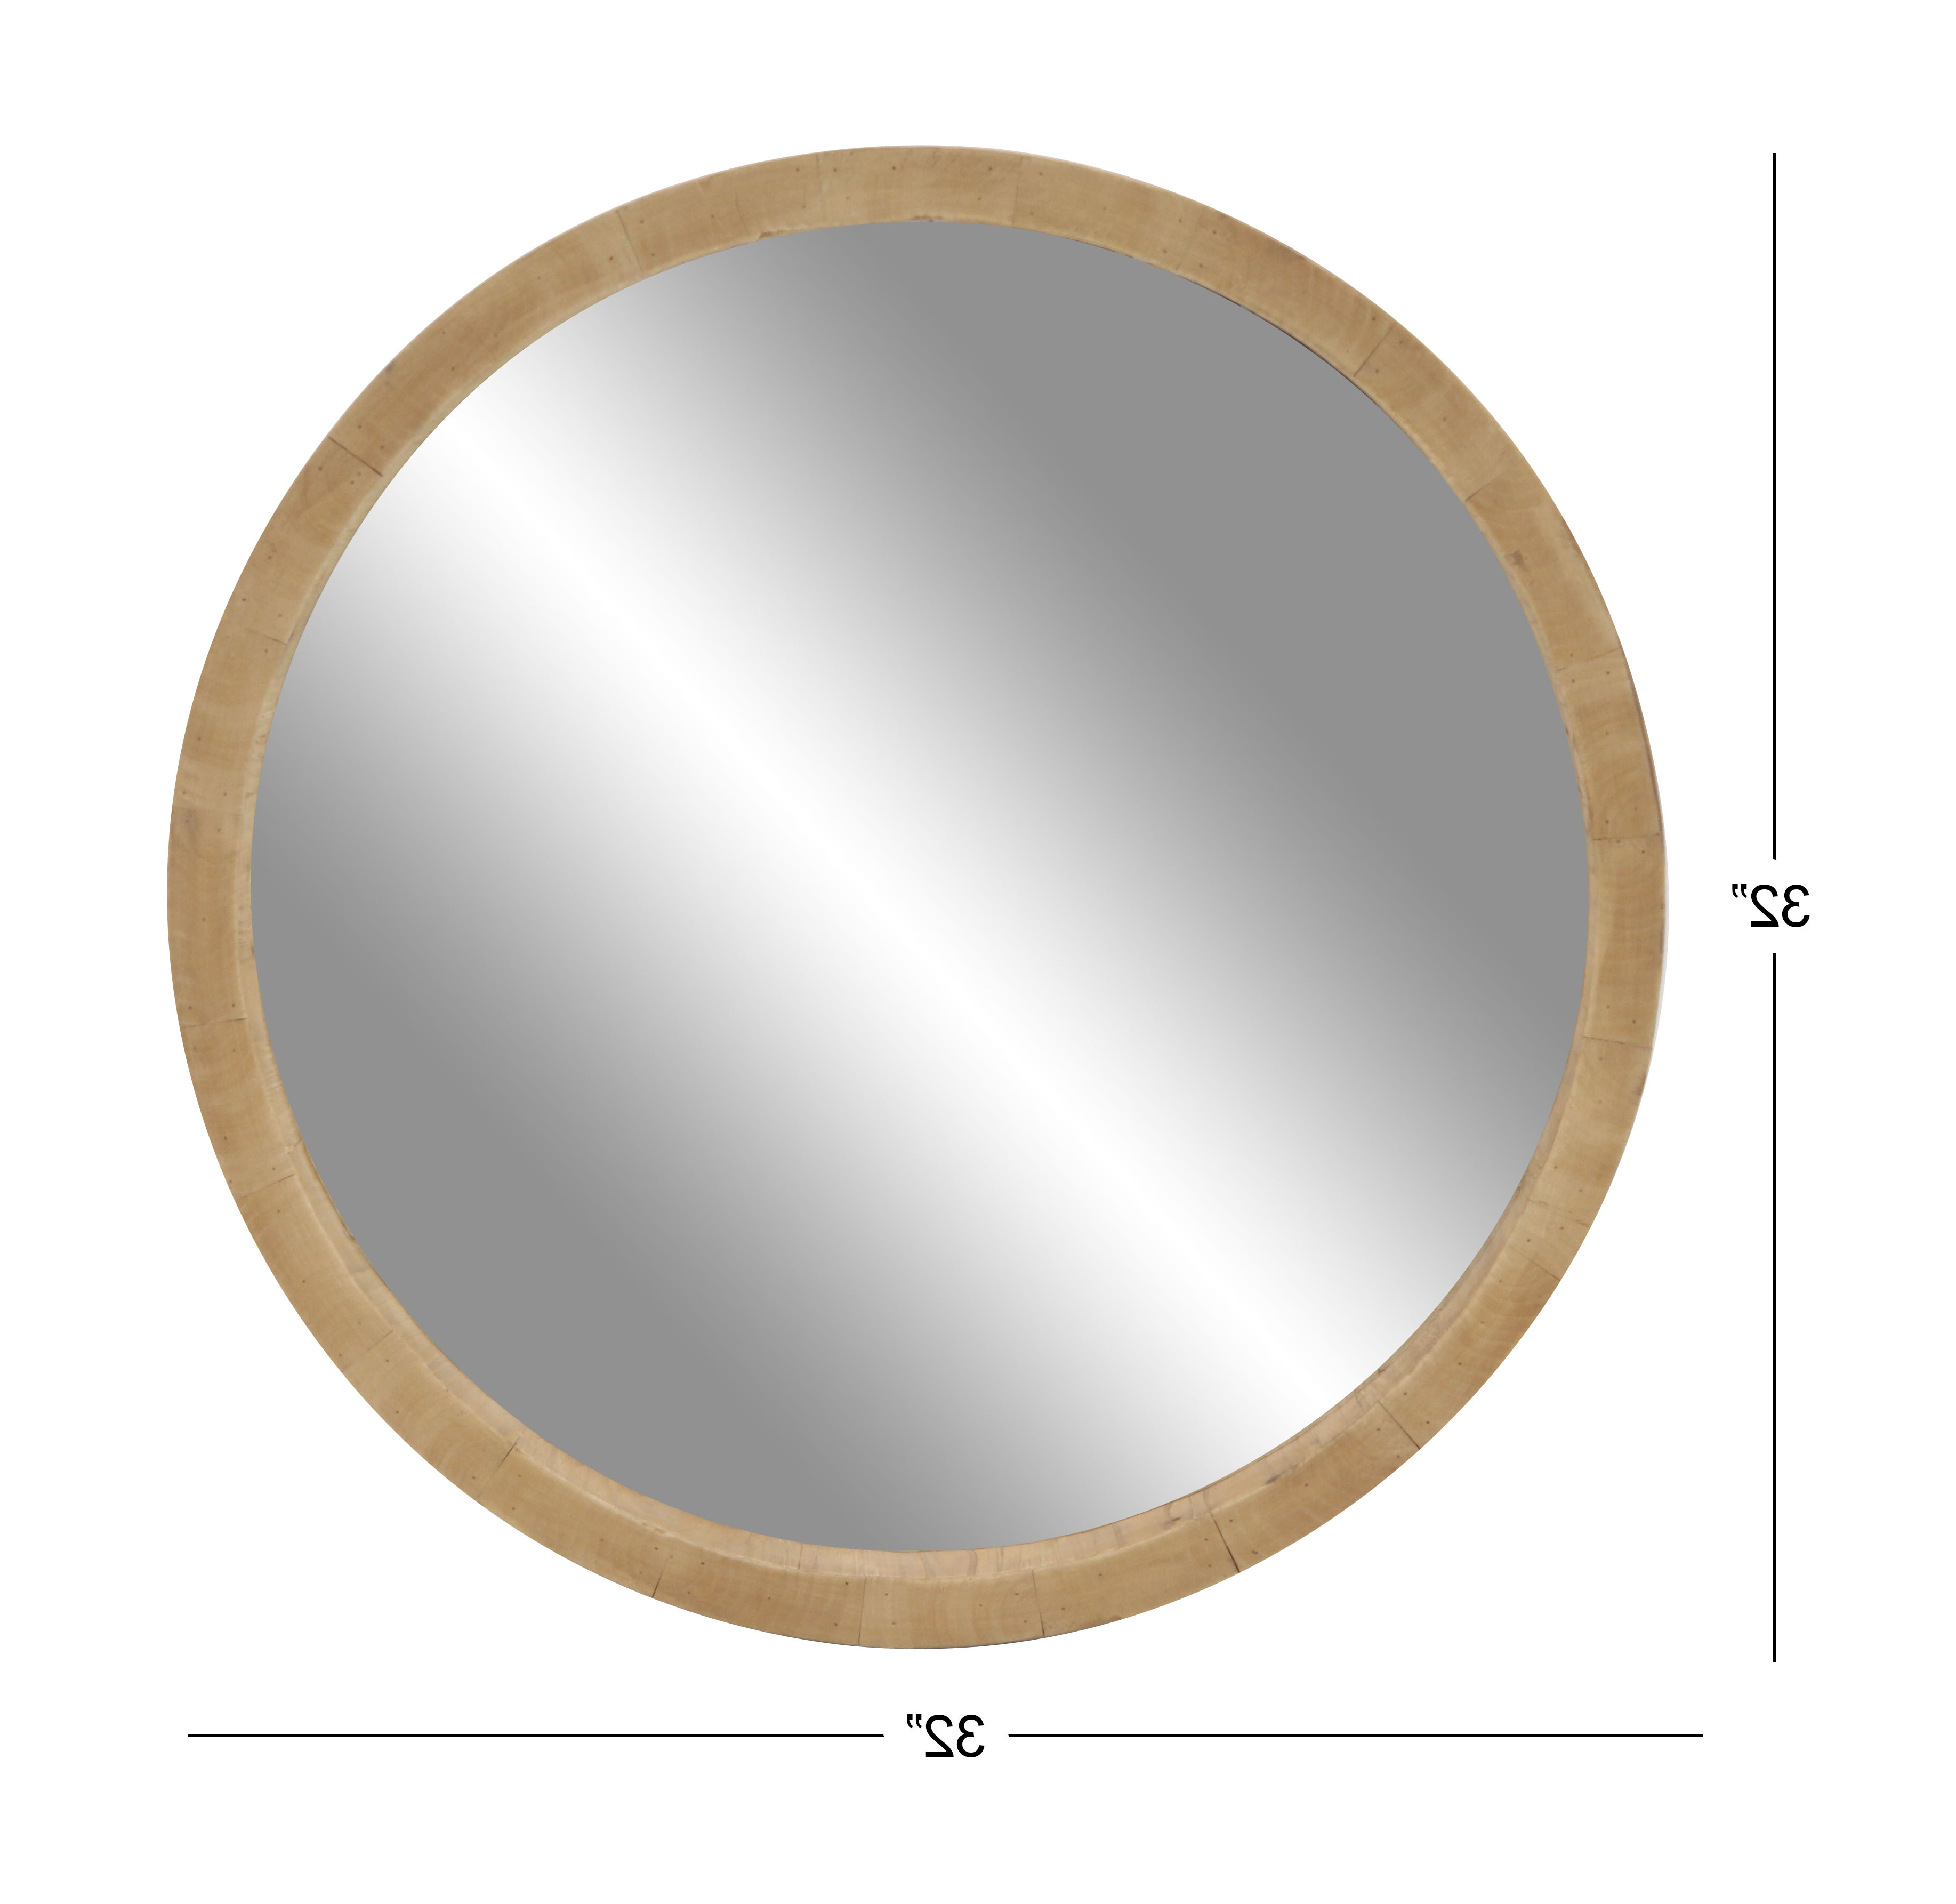 Decmode 32 Inch Rustic Wooden Round Wall Mirror, Brown Within Well Known Round Wood Wall Mirrors (View 17 of 20)